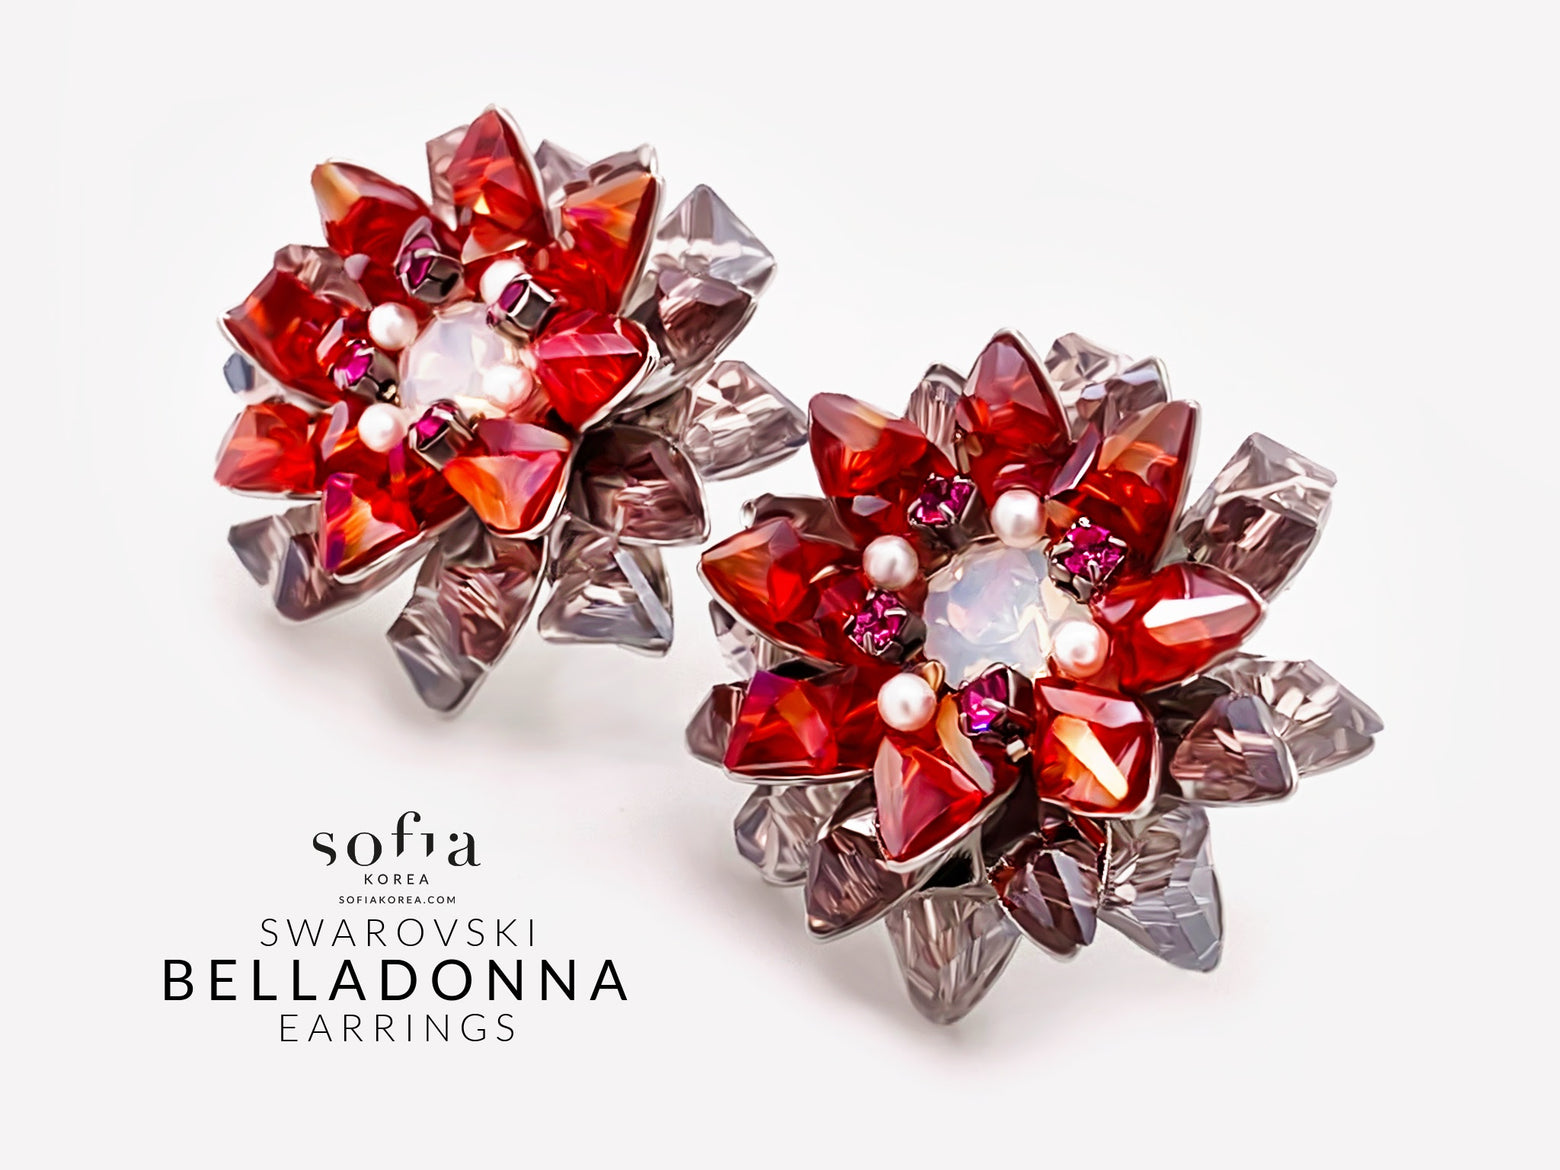 Belladonna Earrings - Sofiakorea